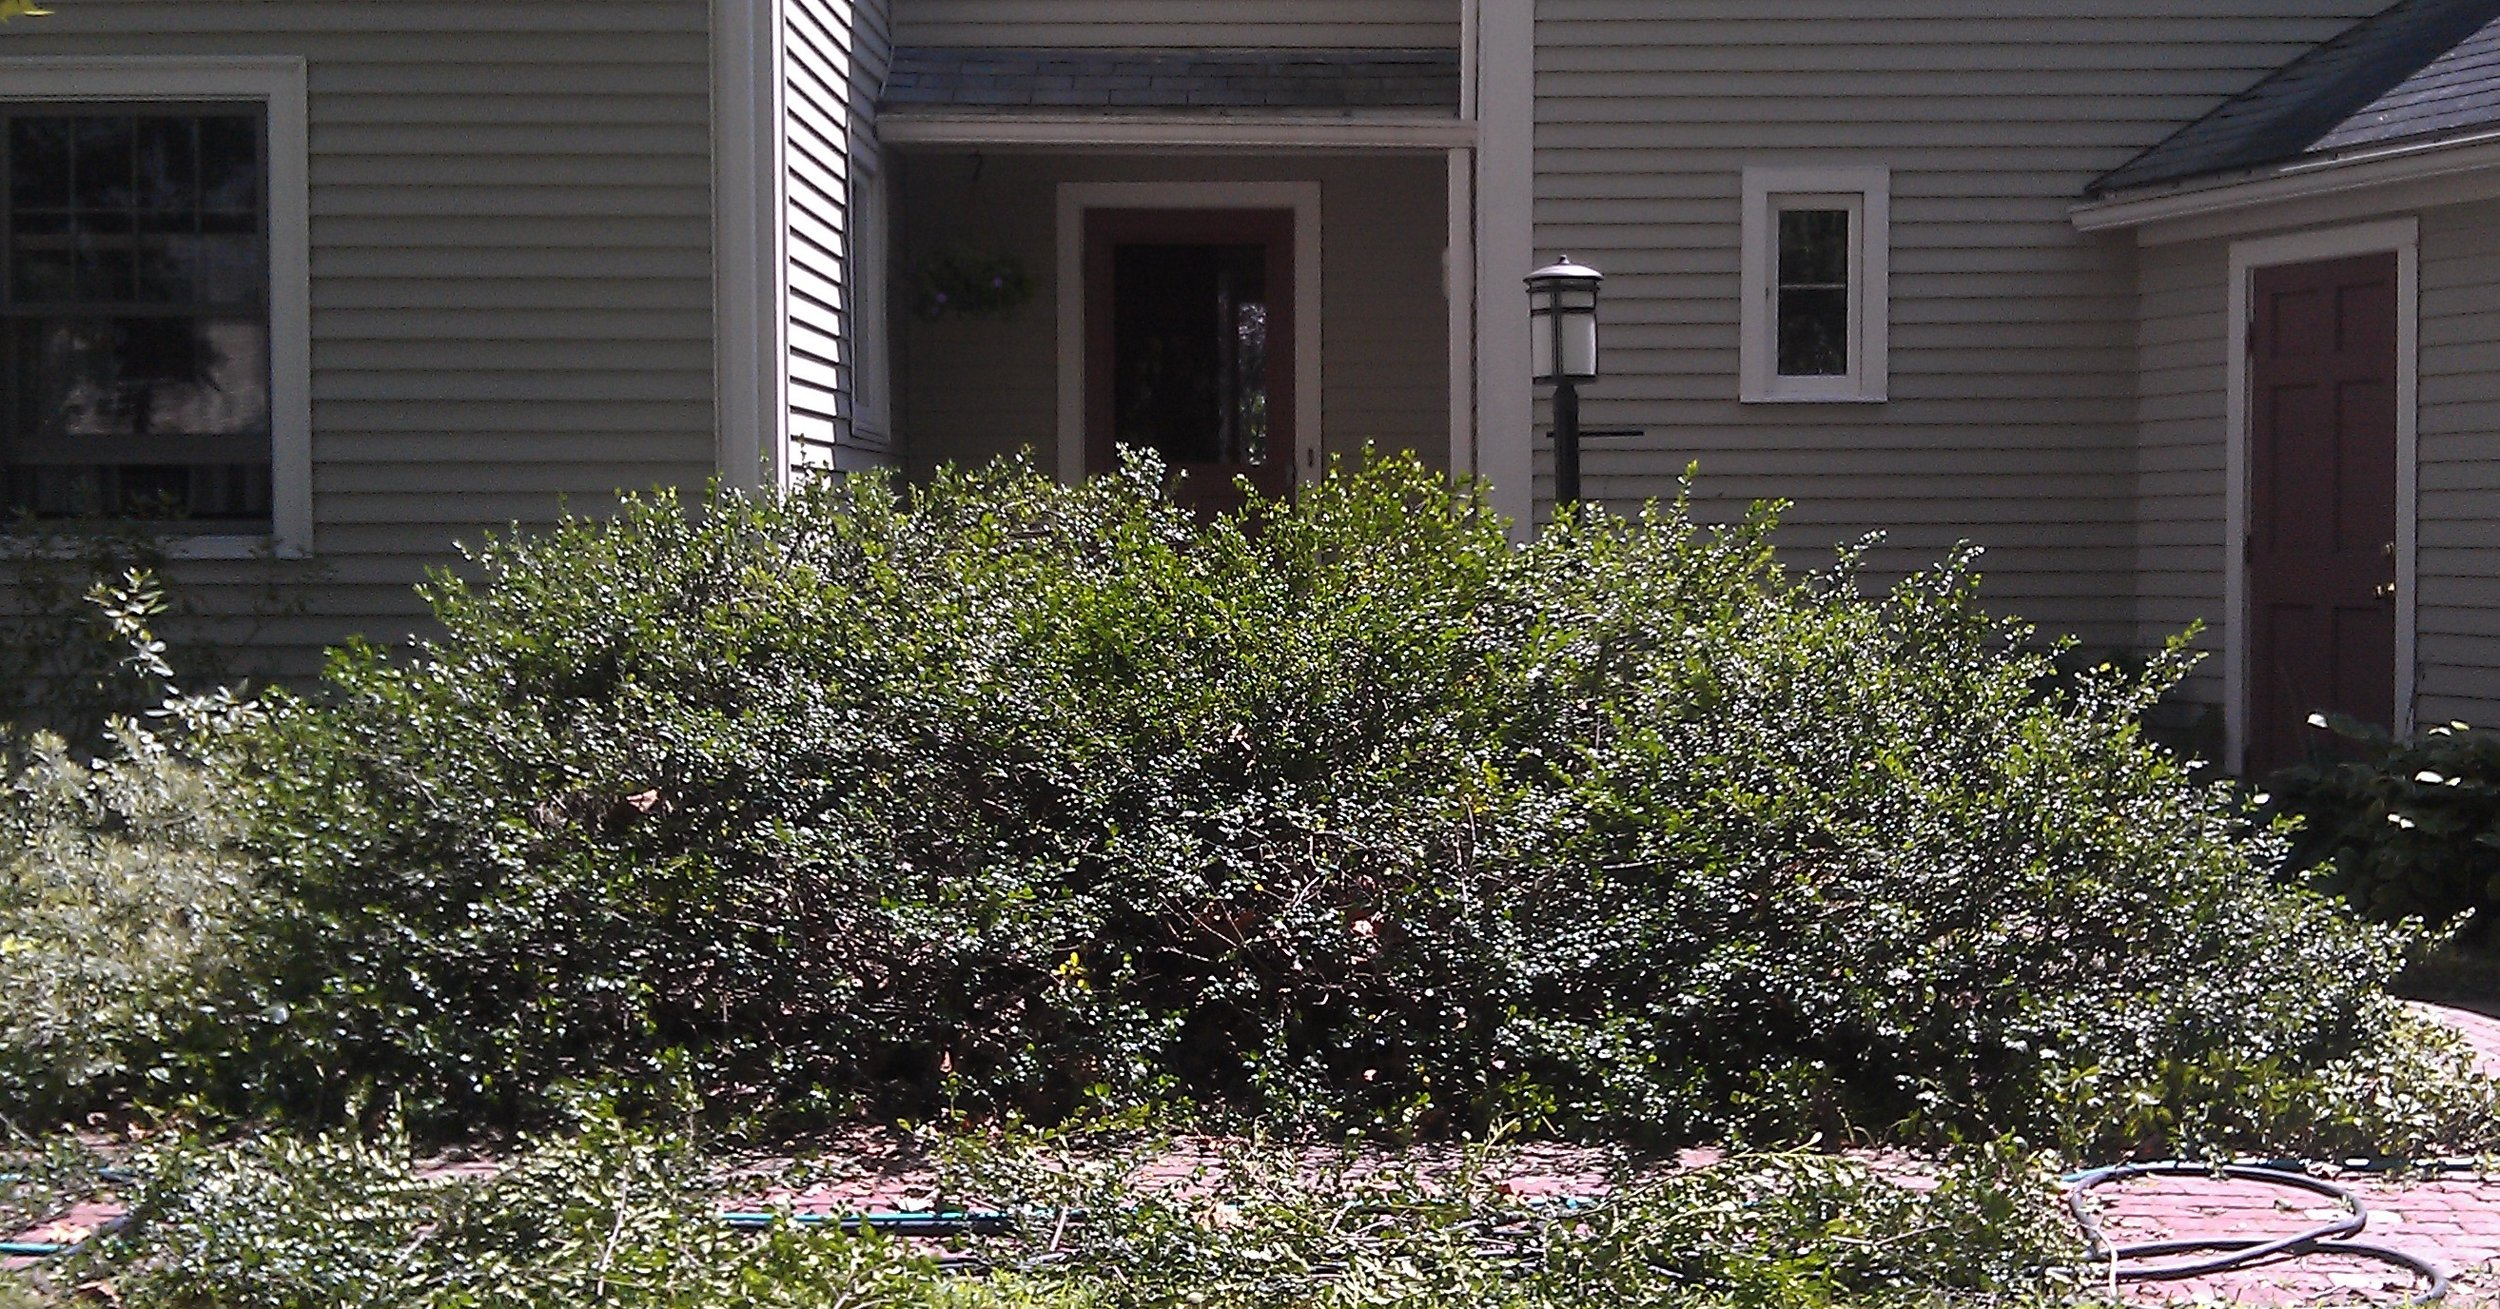 Natural pruning removes long branches inside the the shrub while promoting a neat, contained appearance.